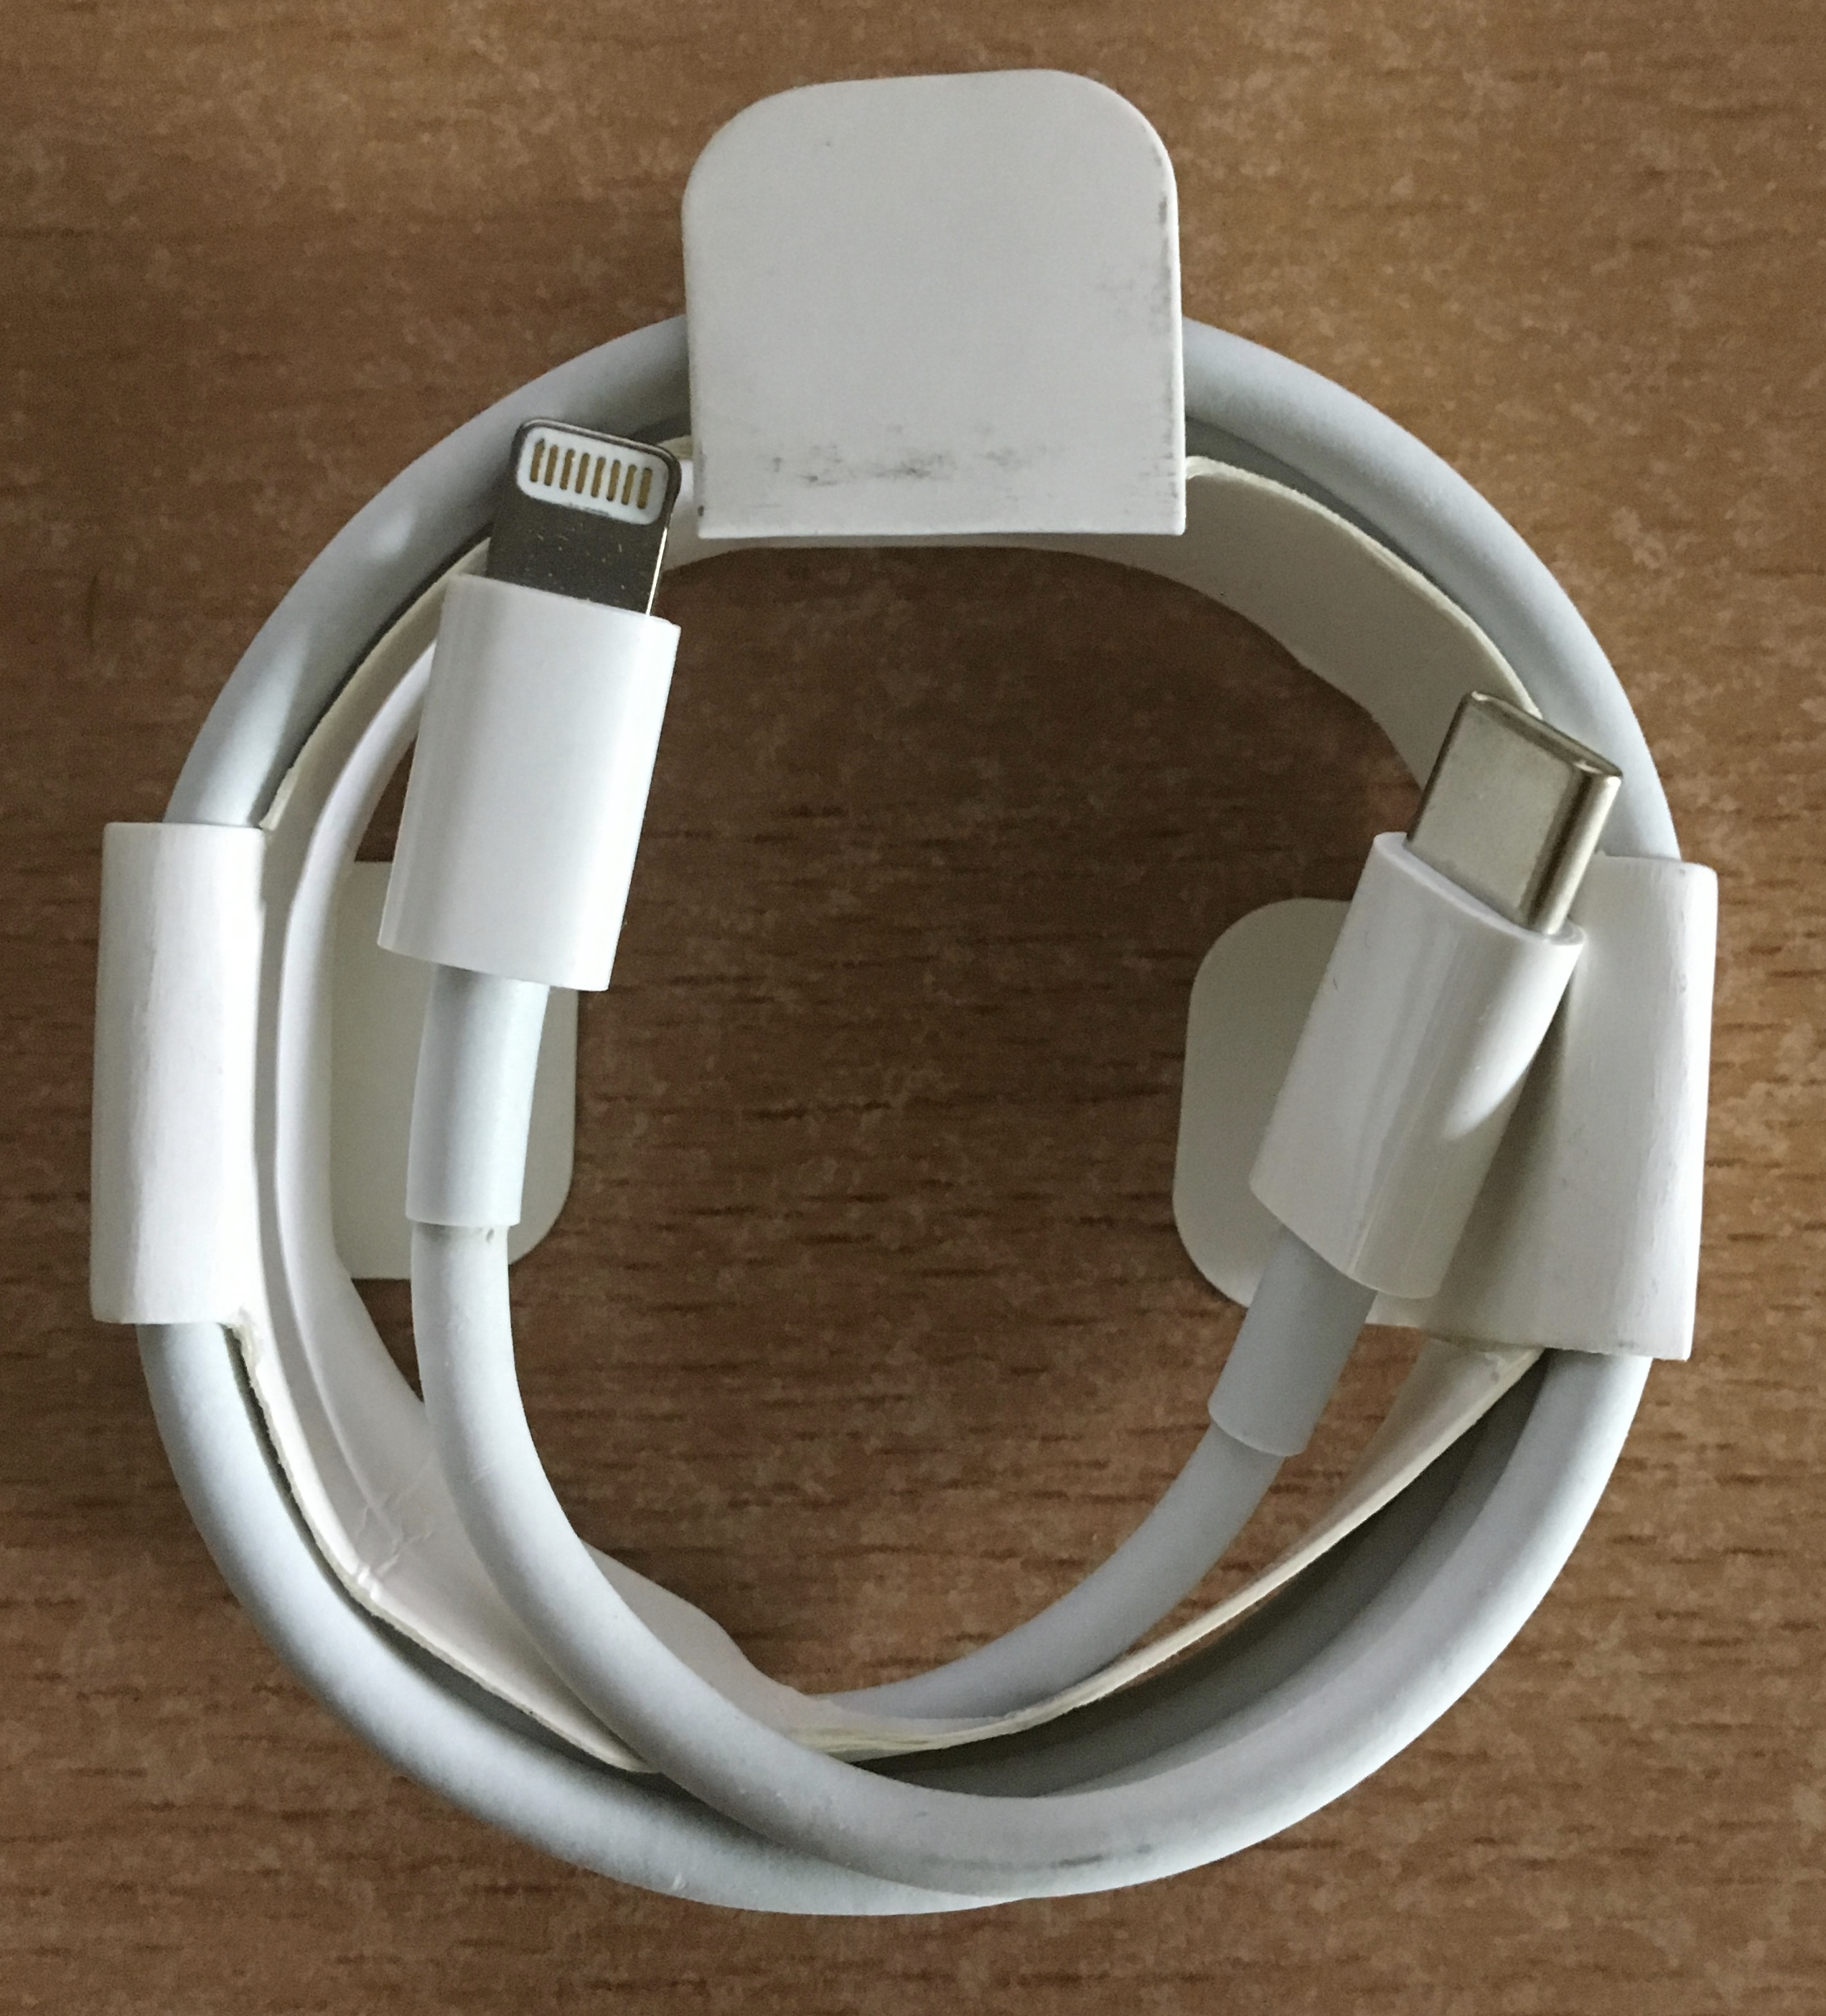 USB-C to Lightning cable, 1m